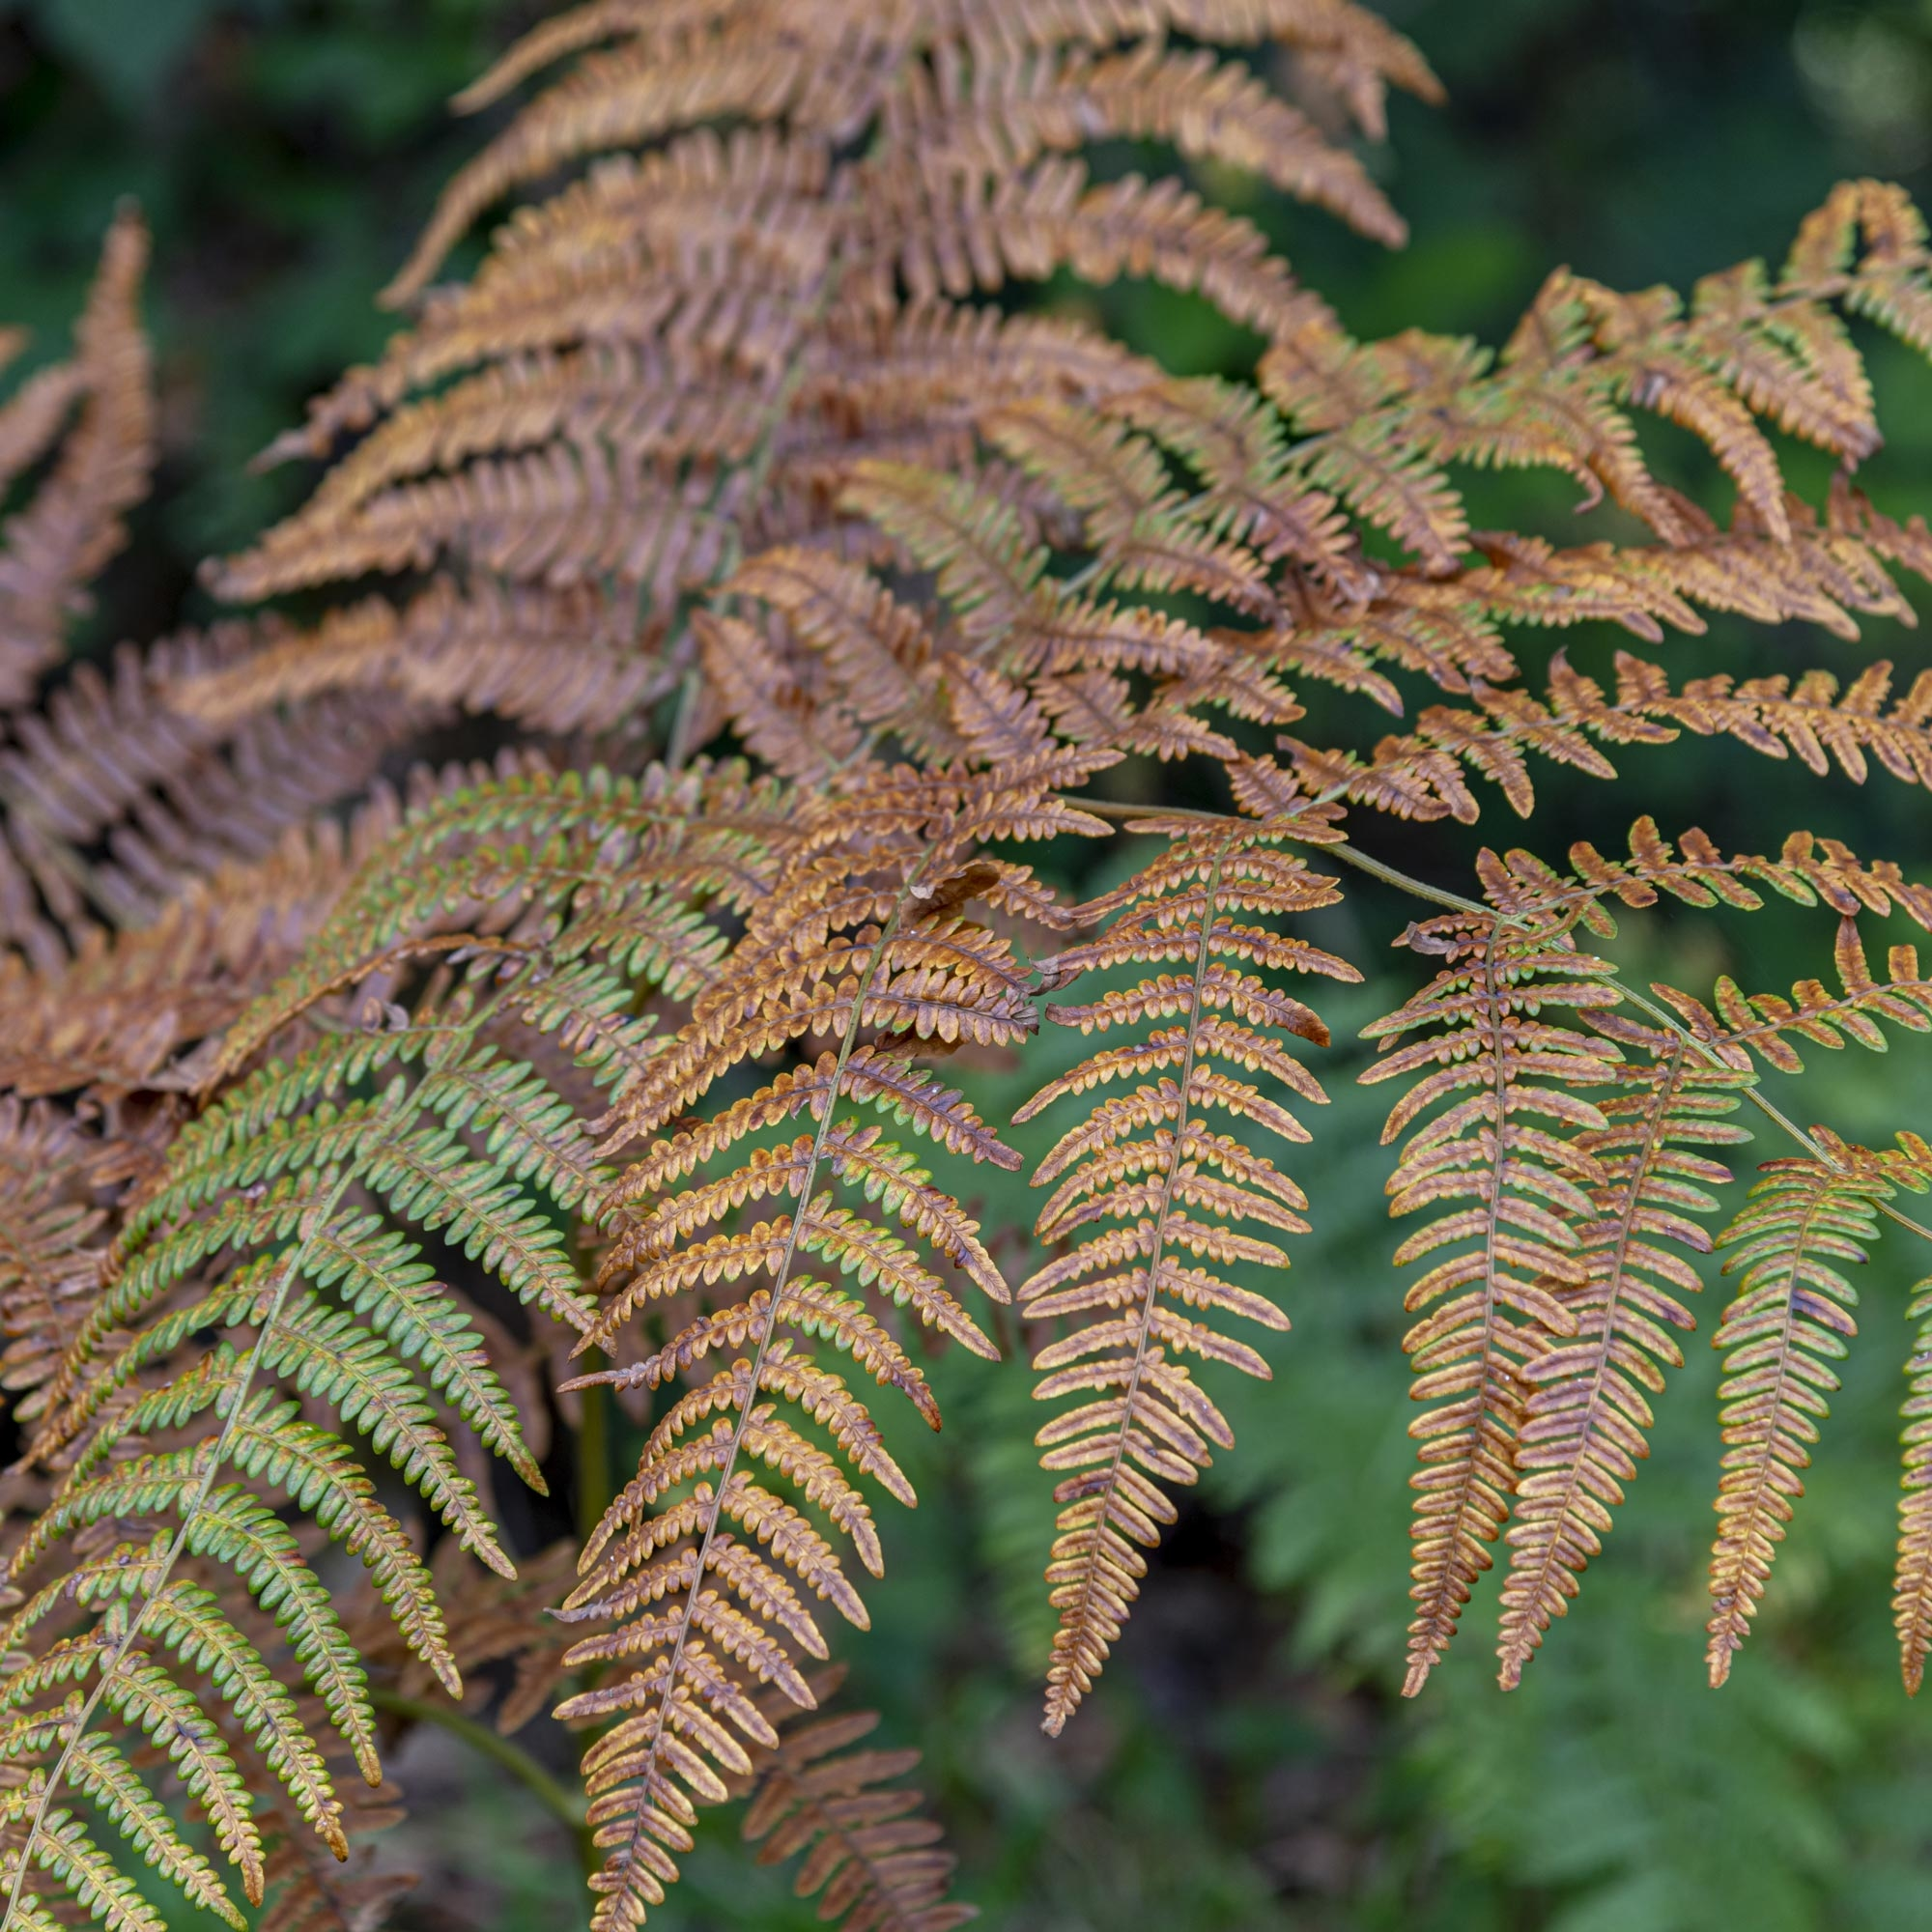 Patterns - Bracken fern leaf, the elements are similar to the whole leaf